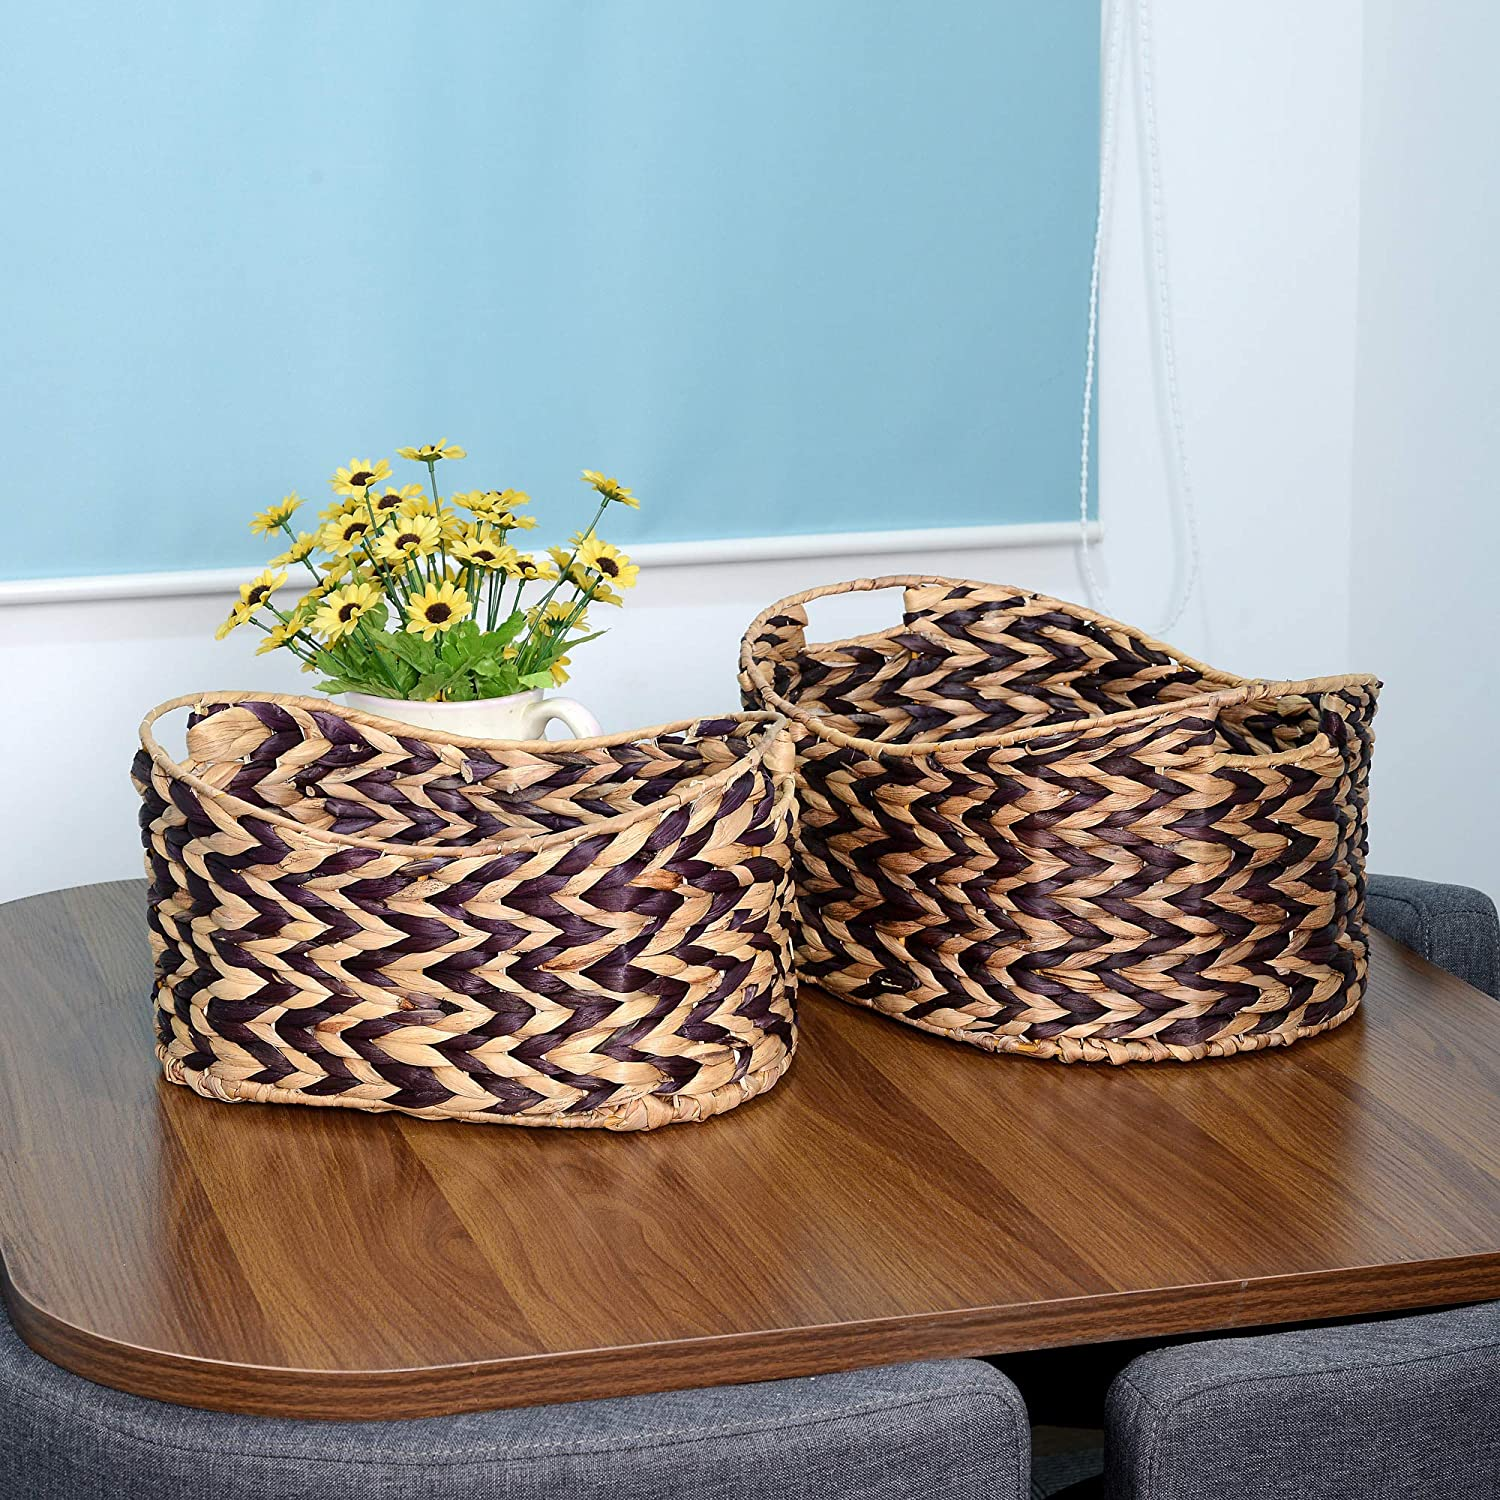 Villacera Bernard Handmade Wicker Water Hyacinth Oval Nesting Baskets Braided in Brown and Natural Seagrass Set of 2